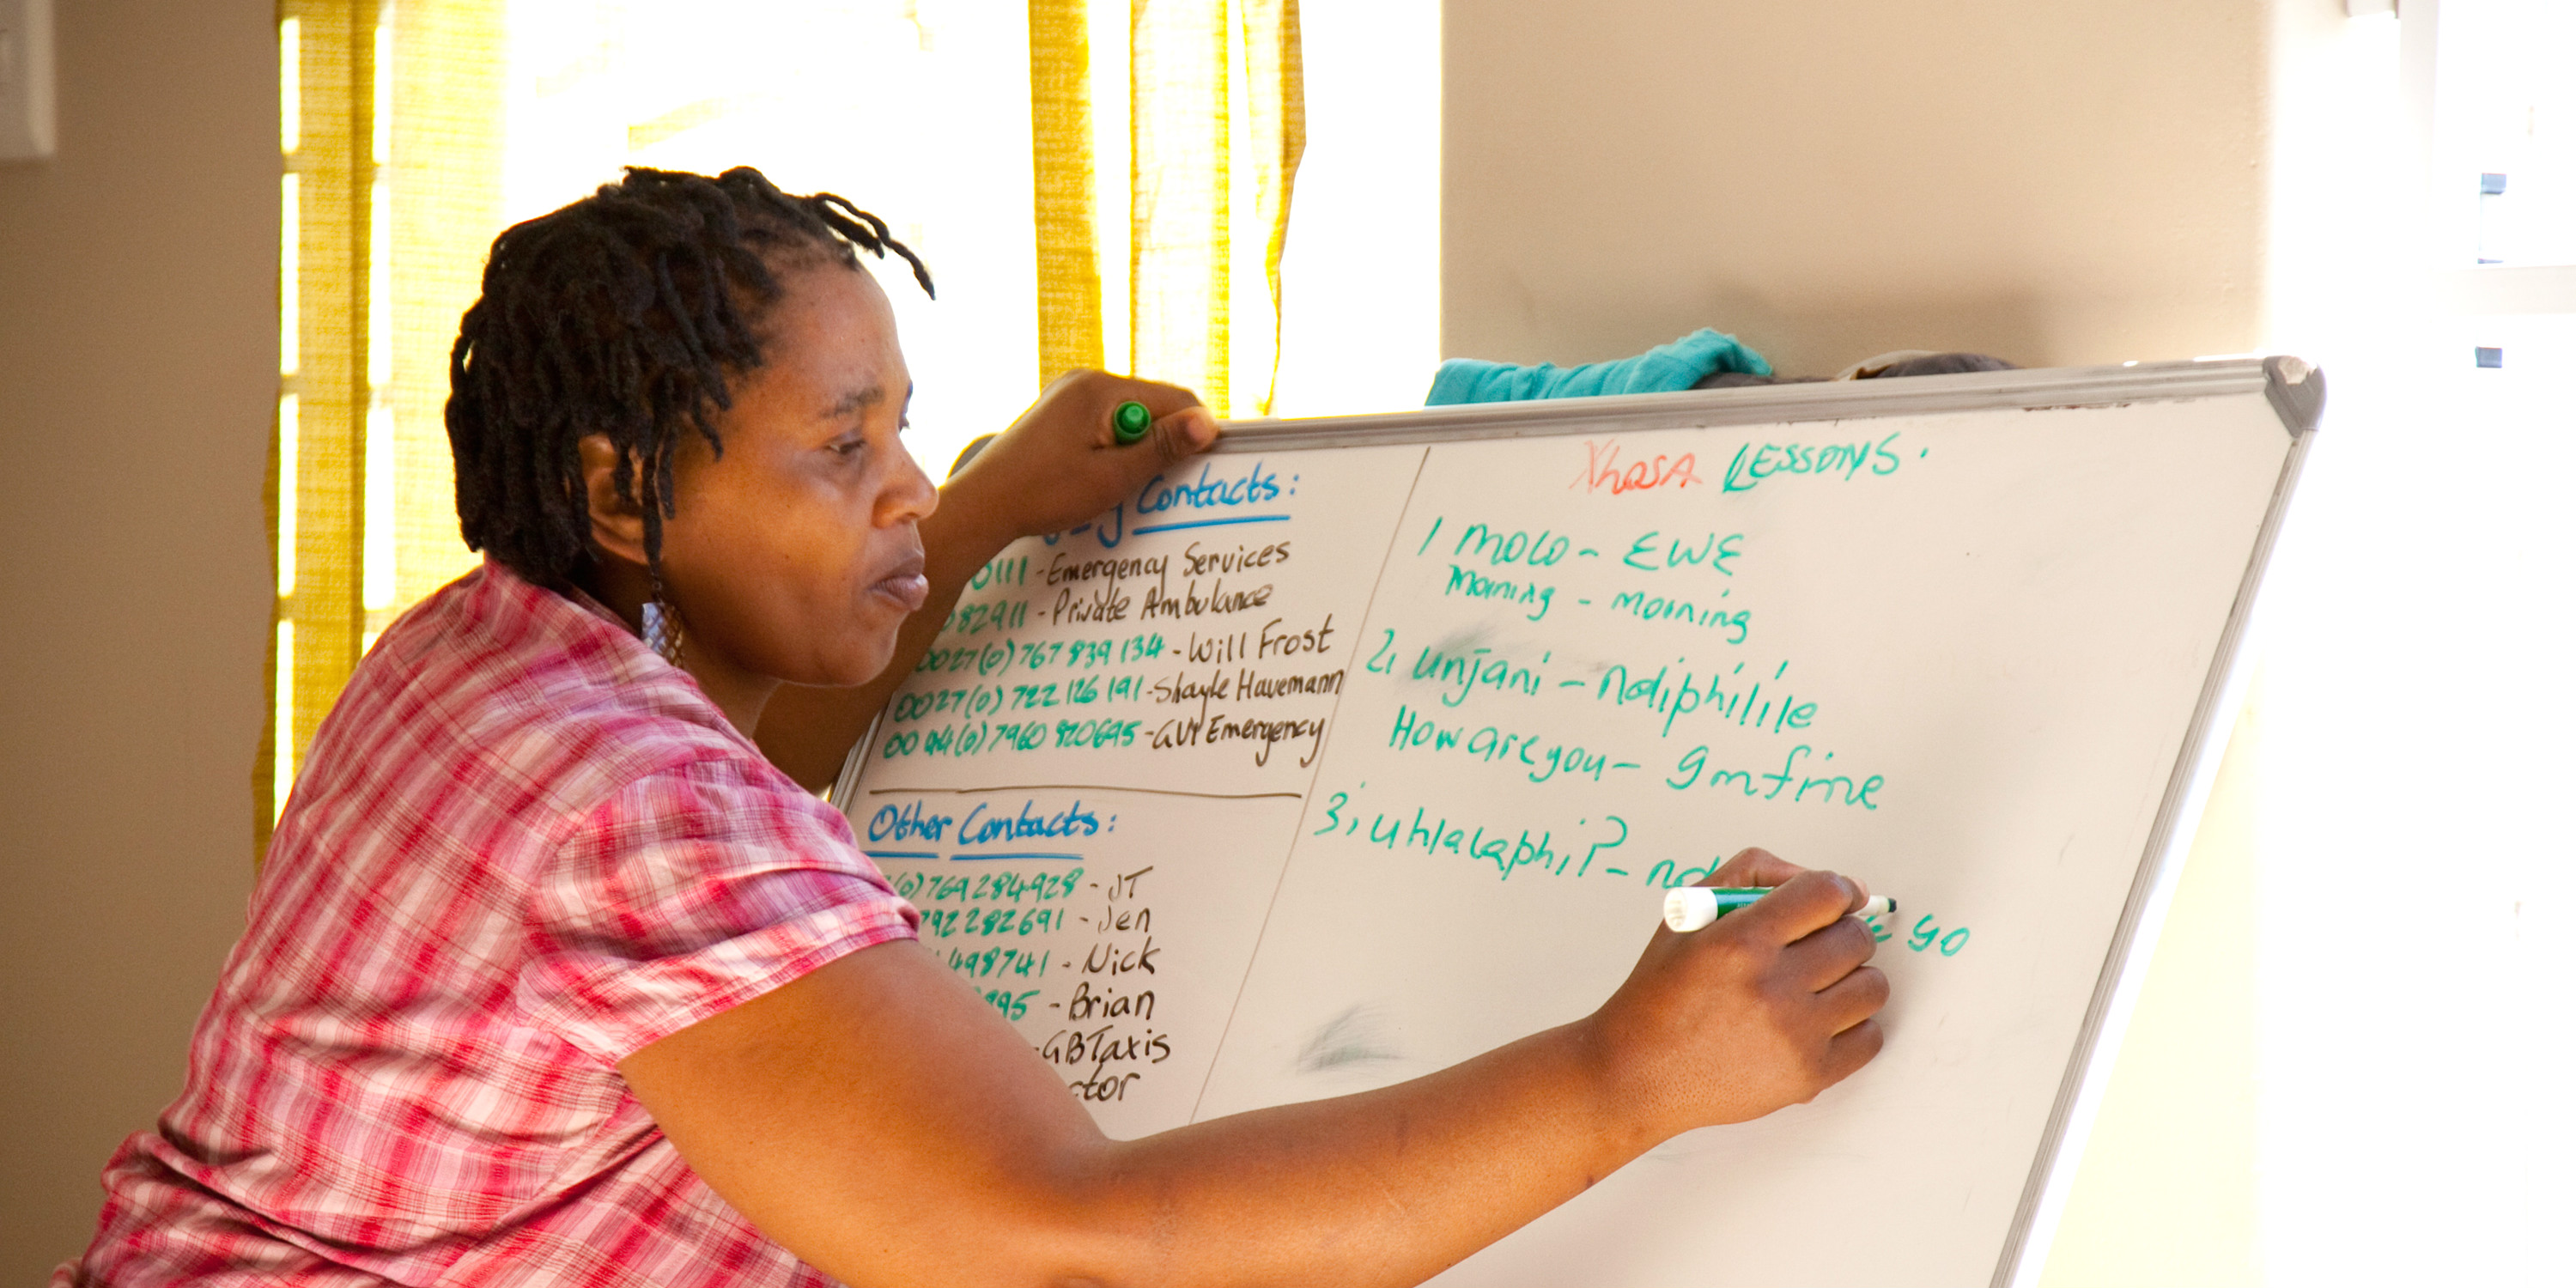 A women works on a language lesson with GVI, as part of a women's empowerment program.